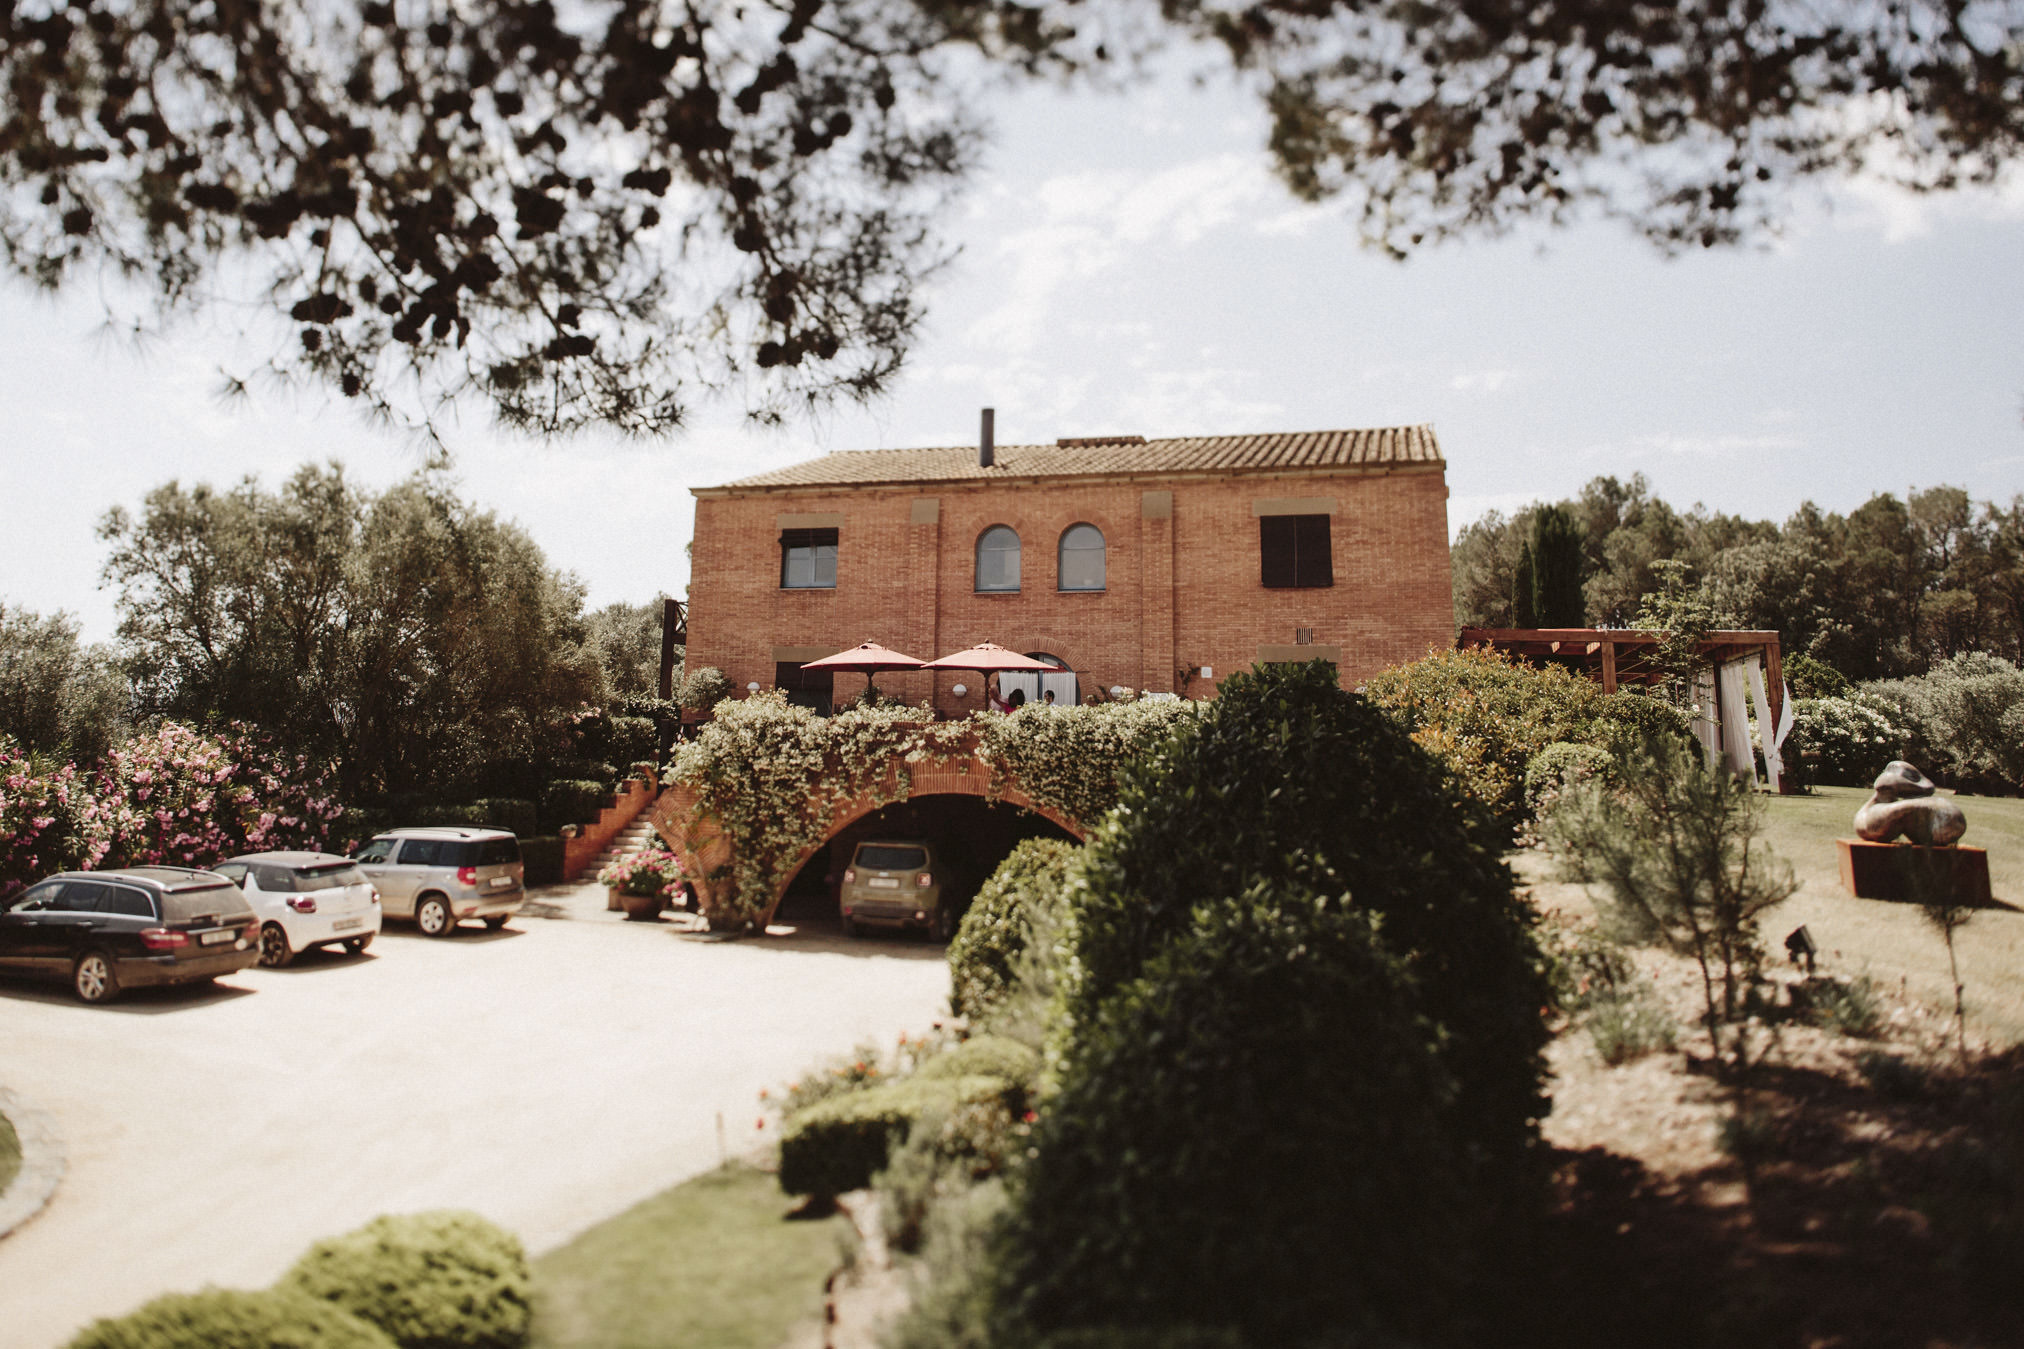 destination wedding photographer girona Graciela Vilagudin Photography 004.jpg